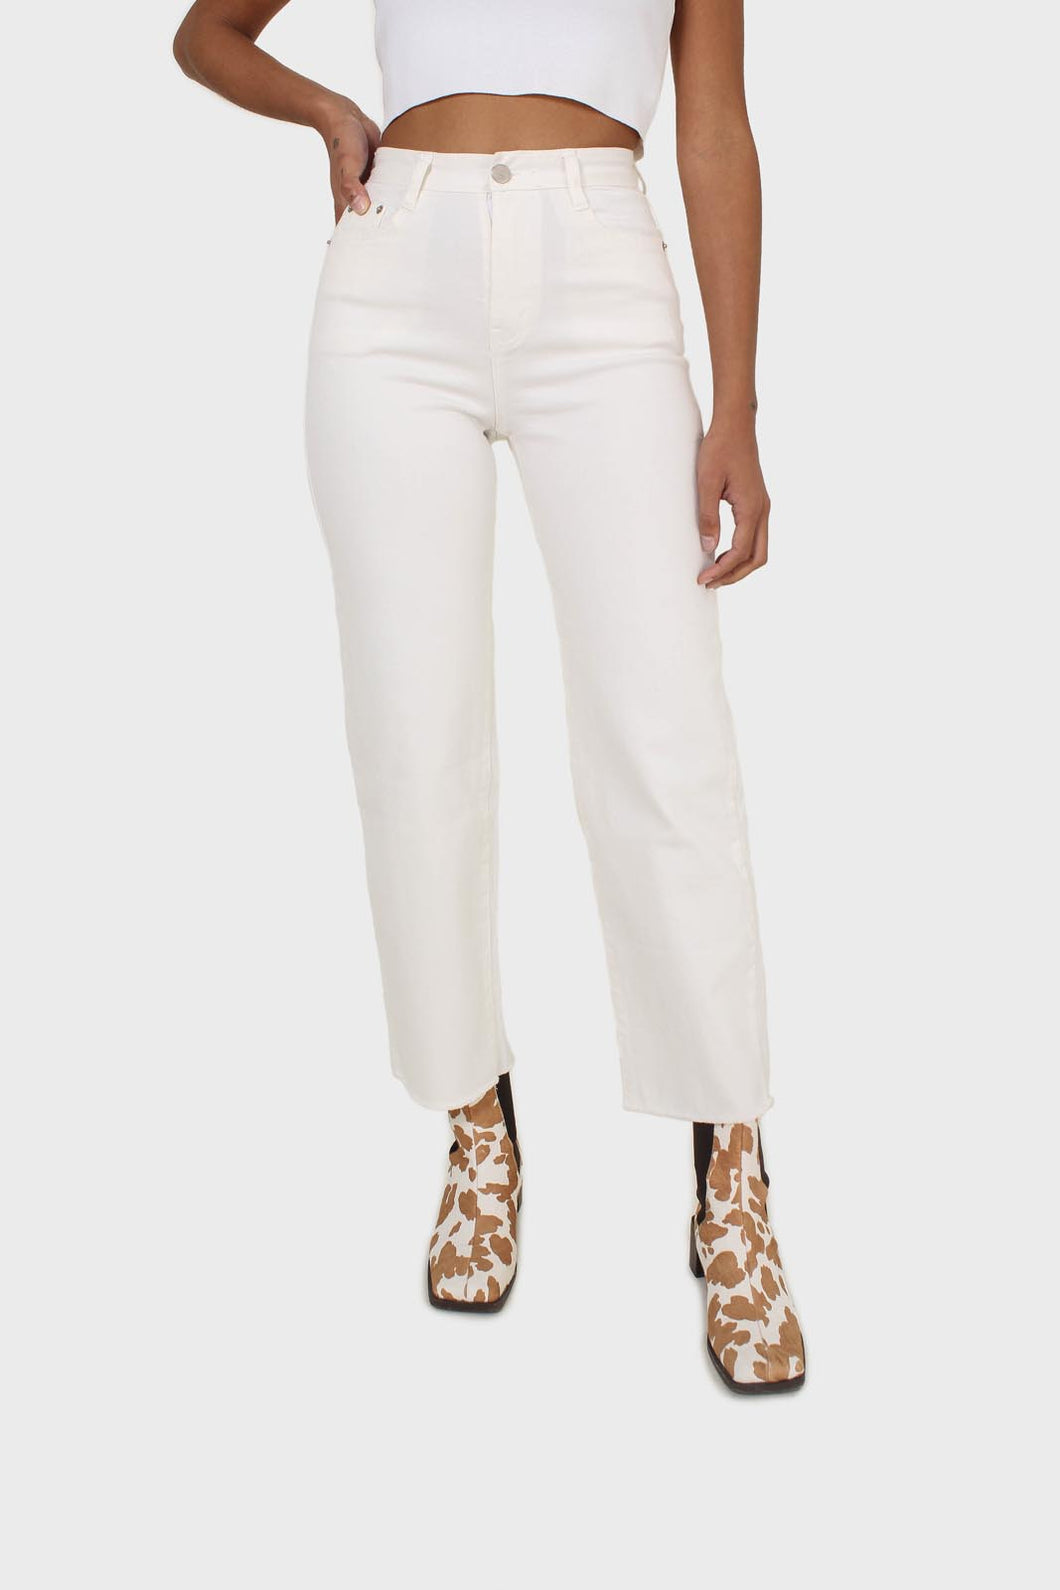 Ivory straight raw cut wide fit jeans - 8391sx